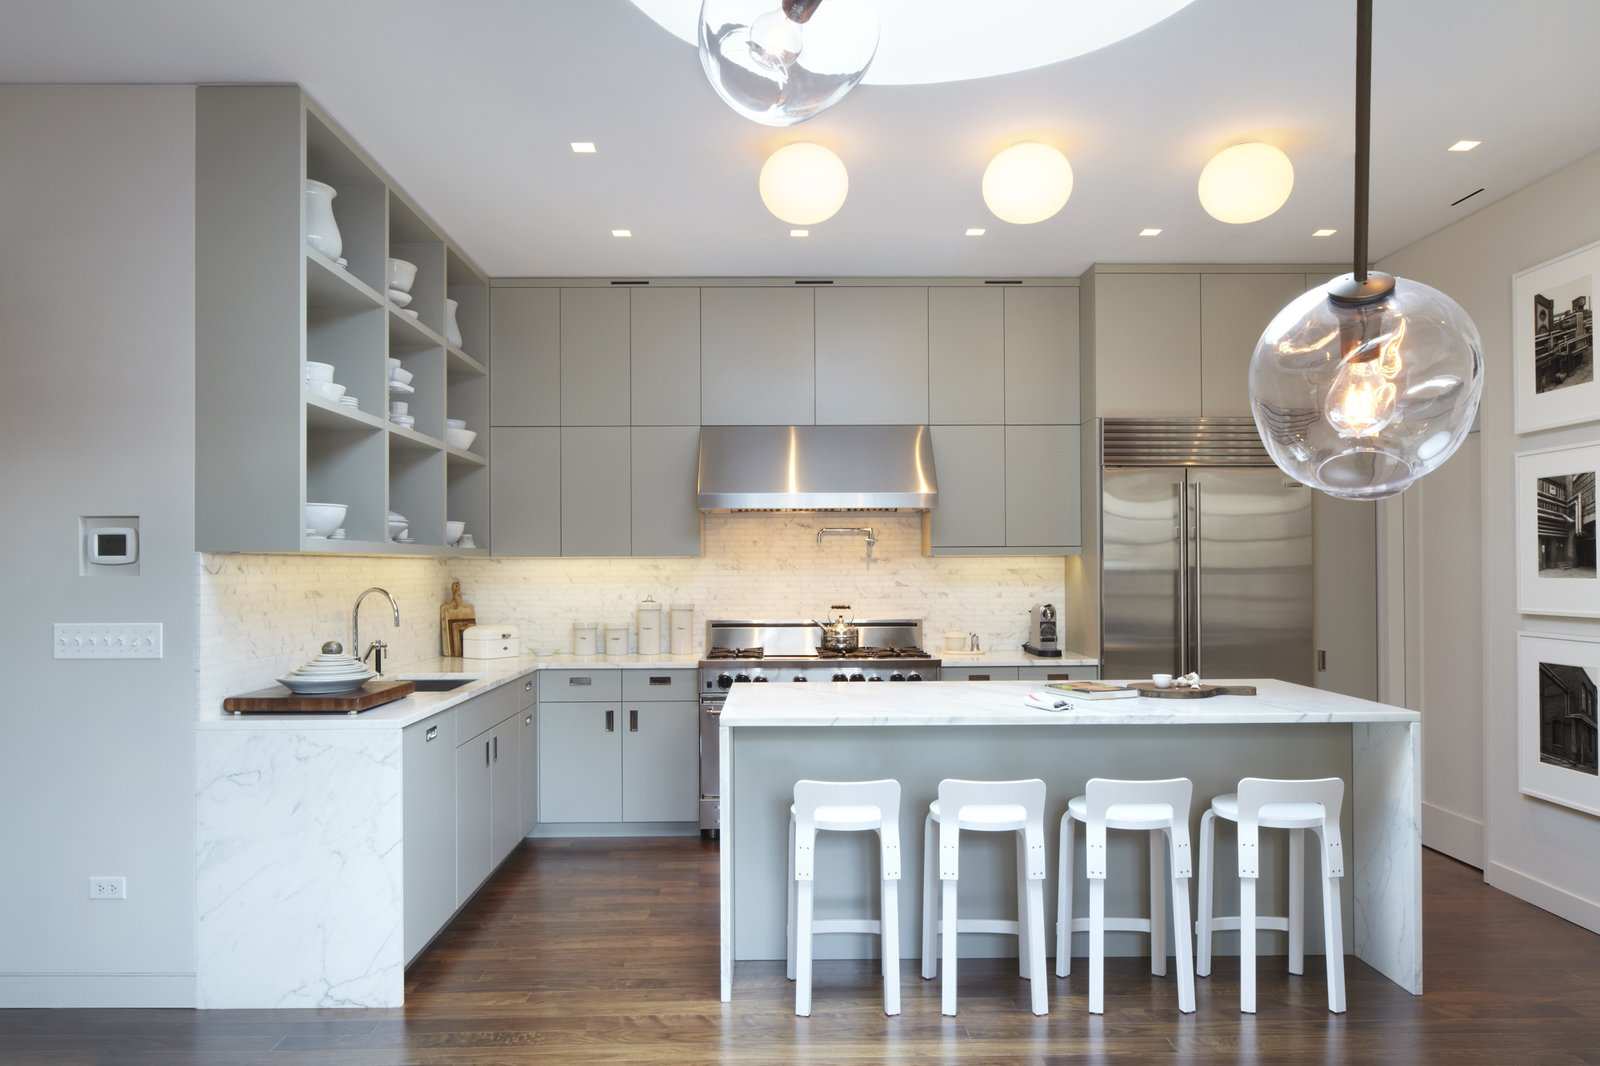 An overall photo of the kitchen with the Bernd and Hilla Becher photograph series on the right.  The drum skylight can be seen above and in the foreground are branches of a Lindsey Adelman pendant which hangs over the dining table.  White Street Residence by pulltab